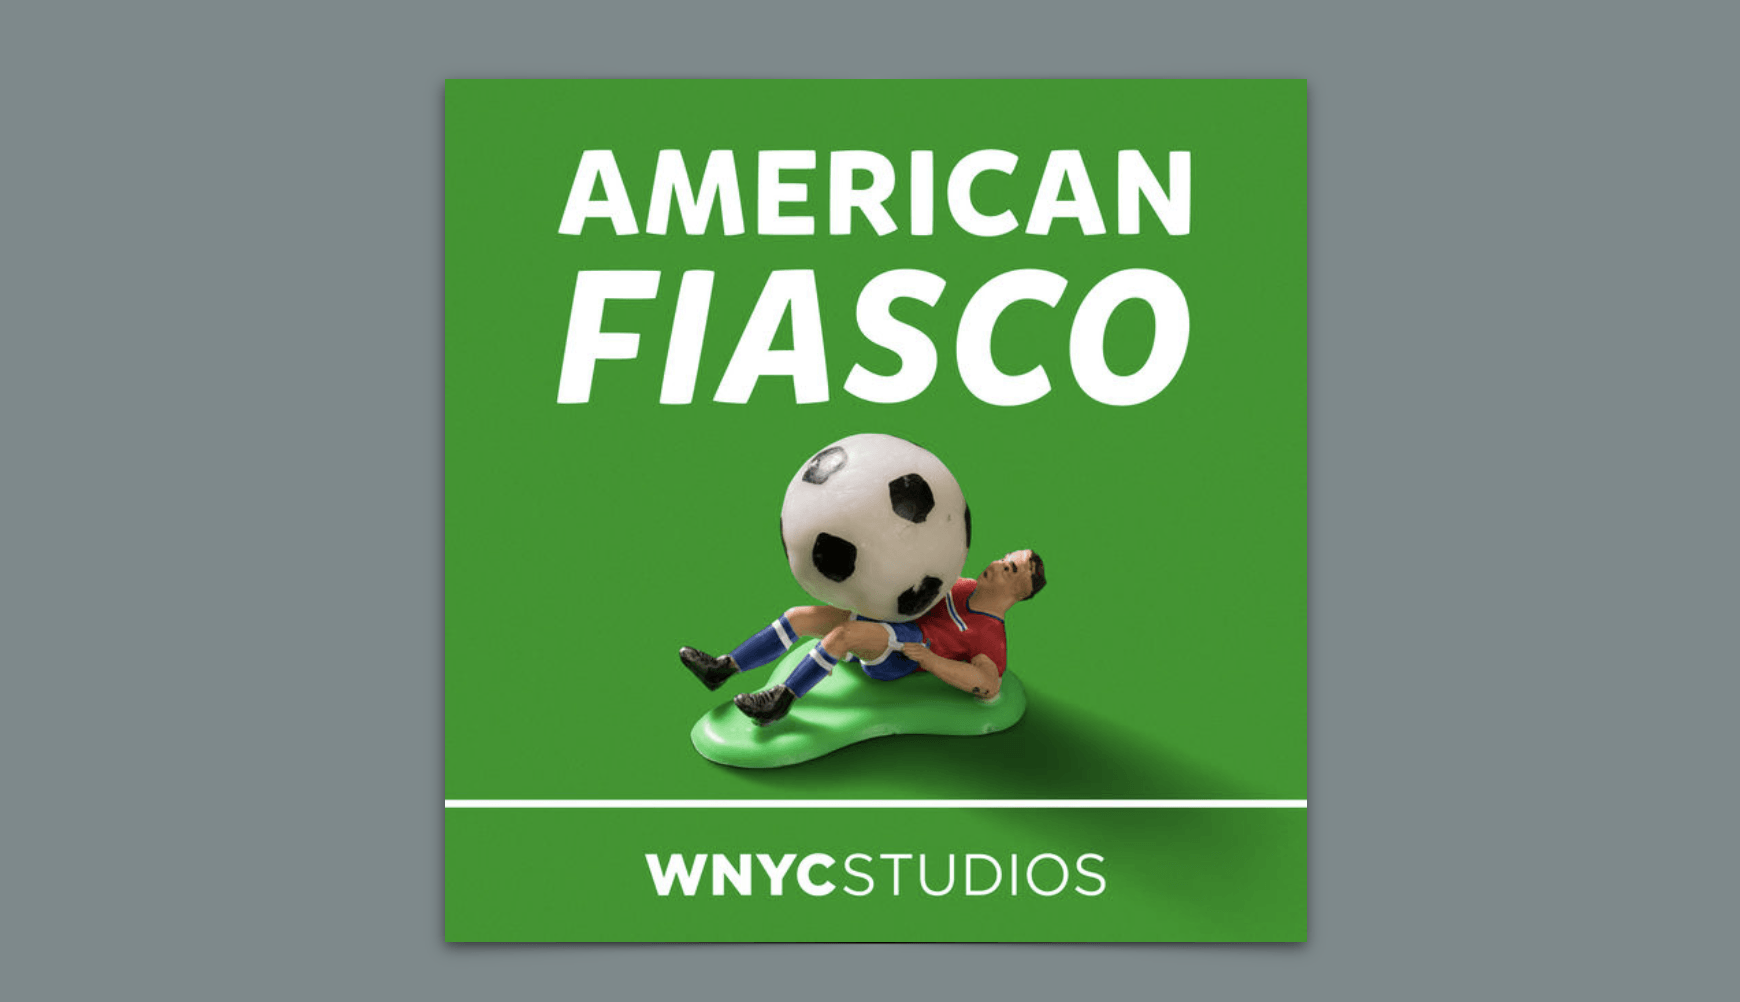 American Fiasco Podcast Review